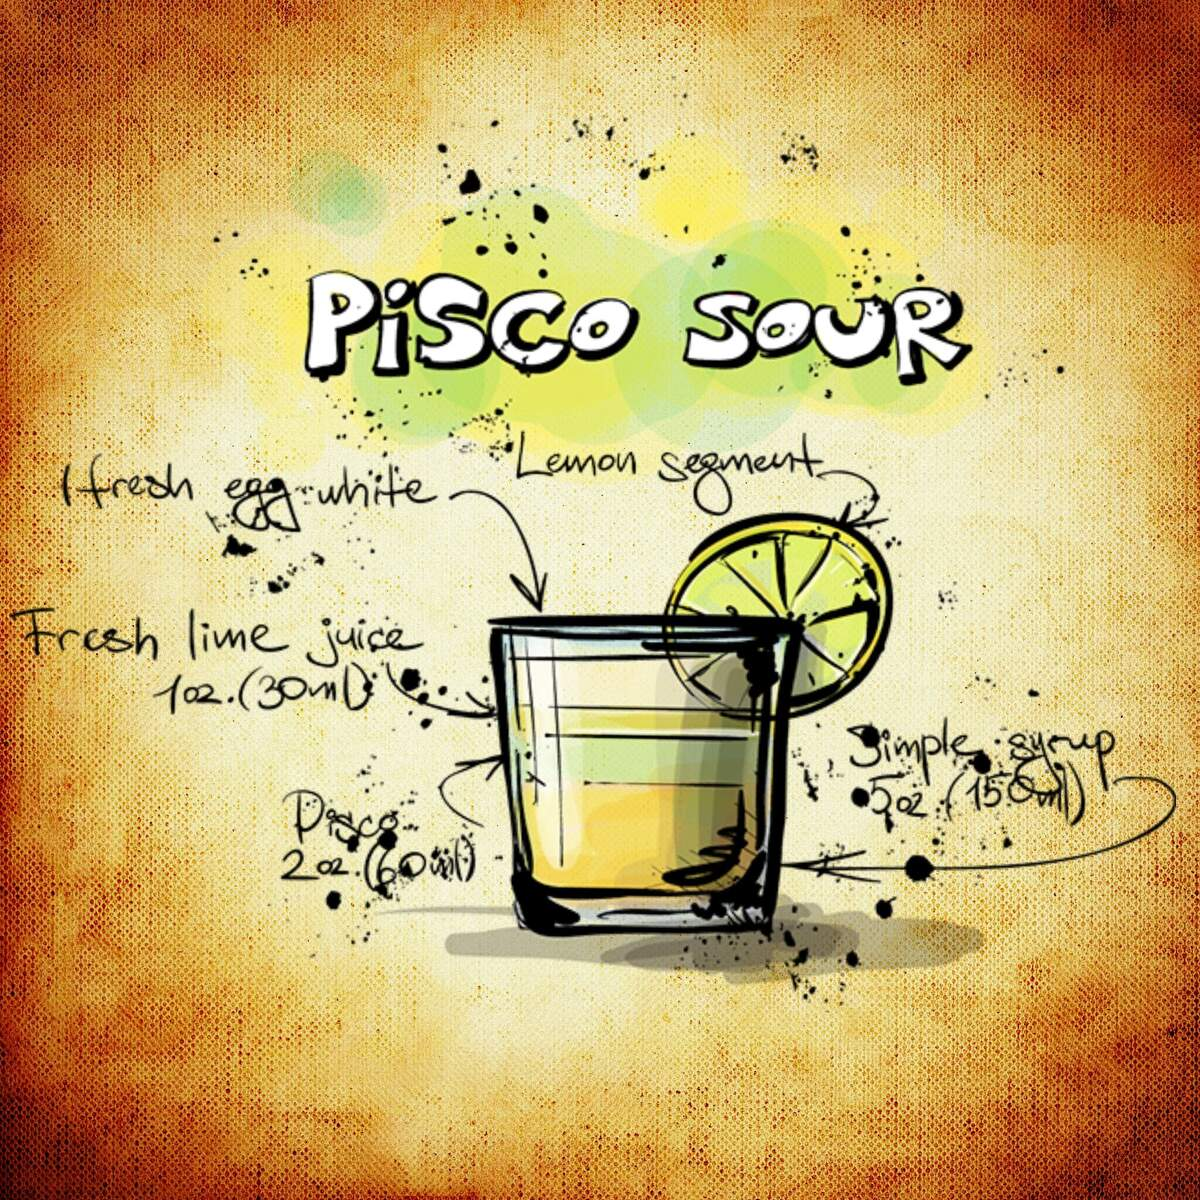 Image for International Pisco Sour Day